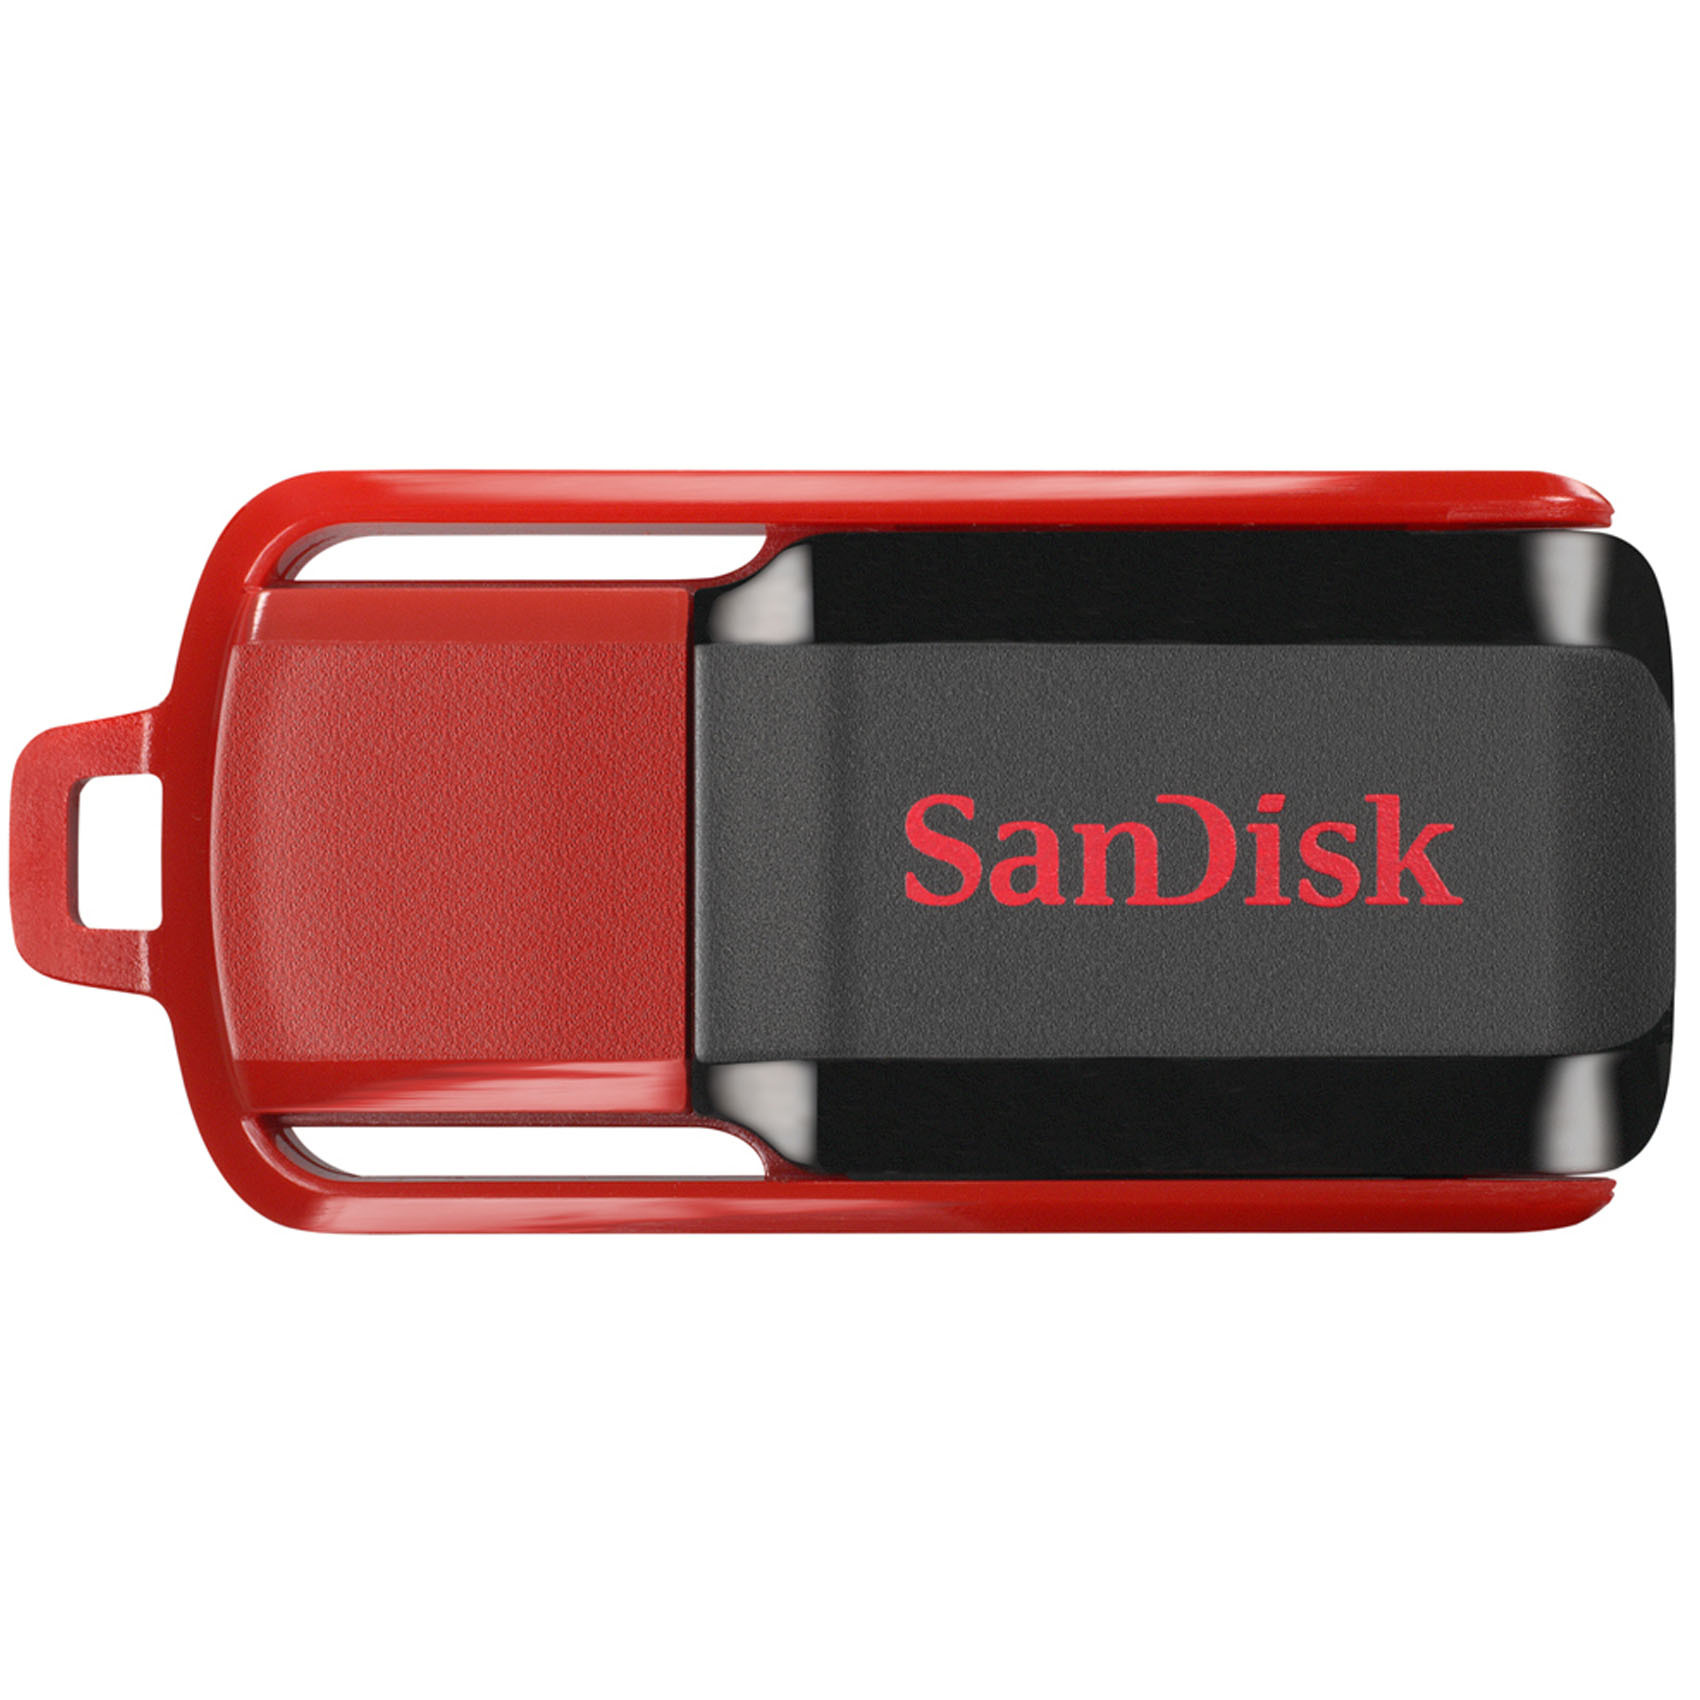 SANDISK USB F/D CRUZER SWITCH 64GB